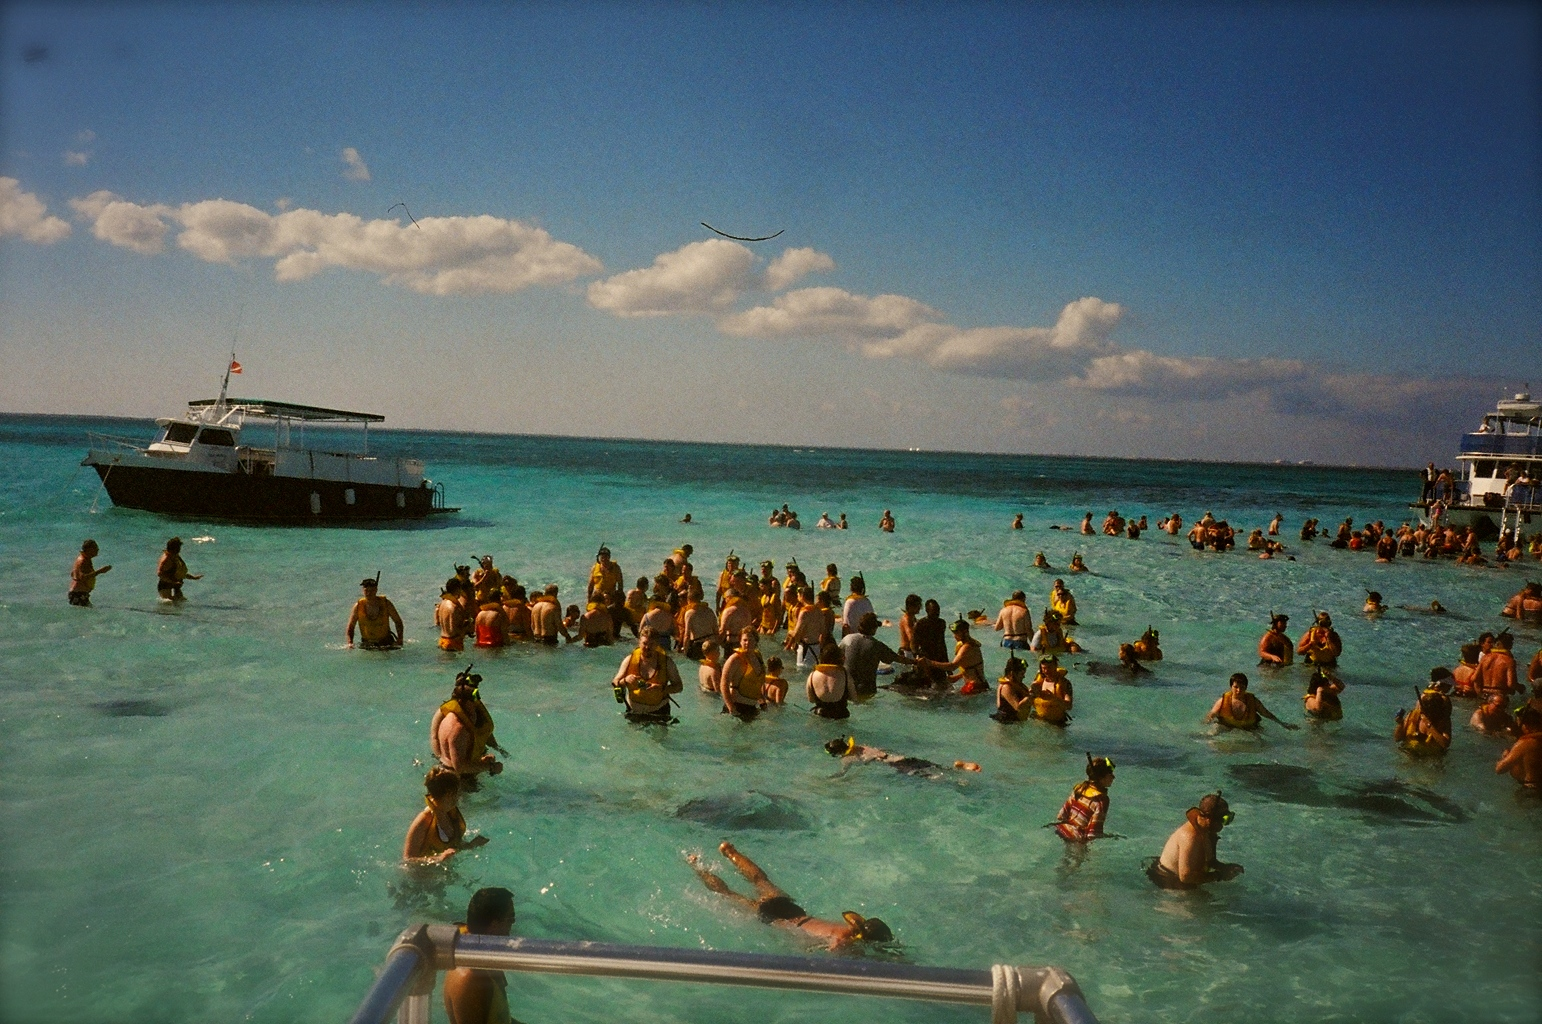 A view (from the boat) of the sand bar just off the island of Grand Cayman.